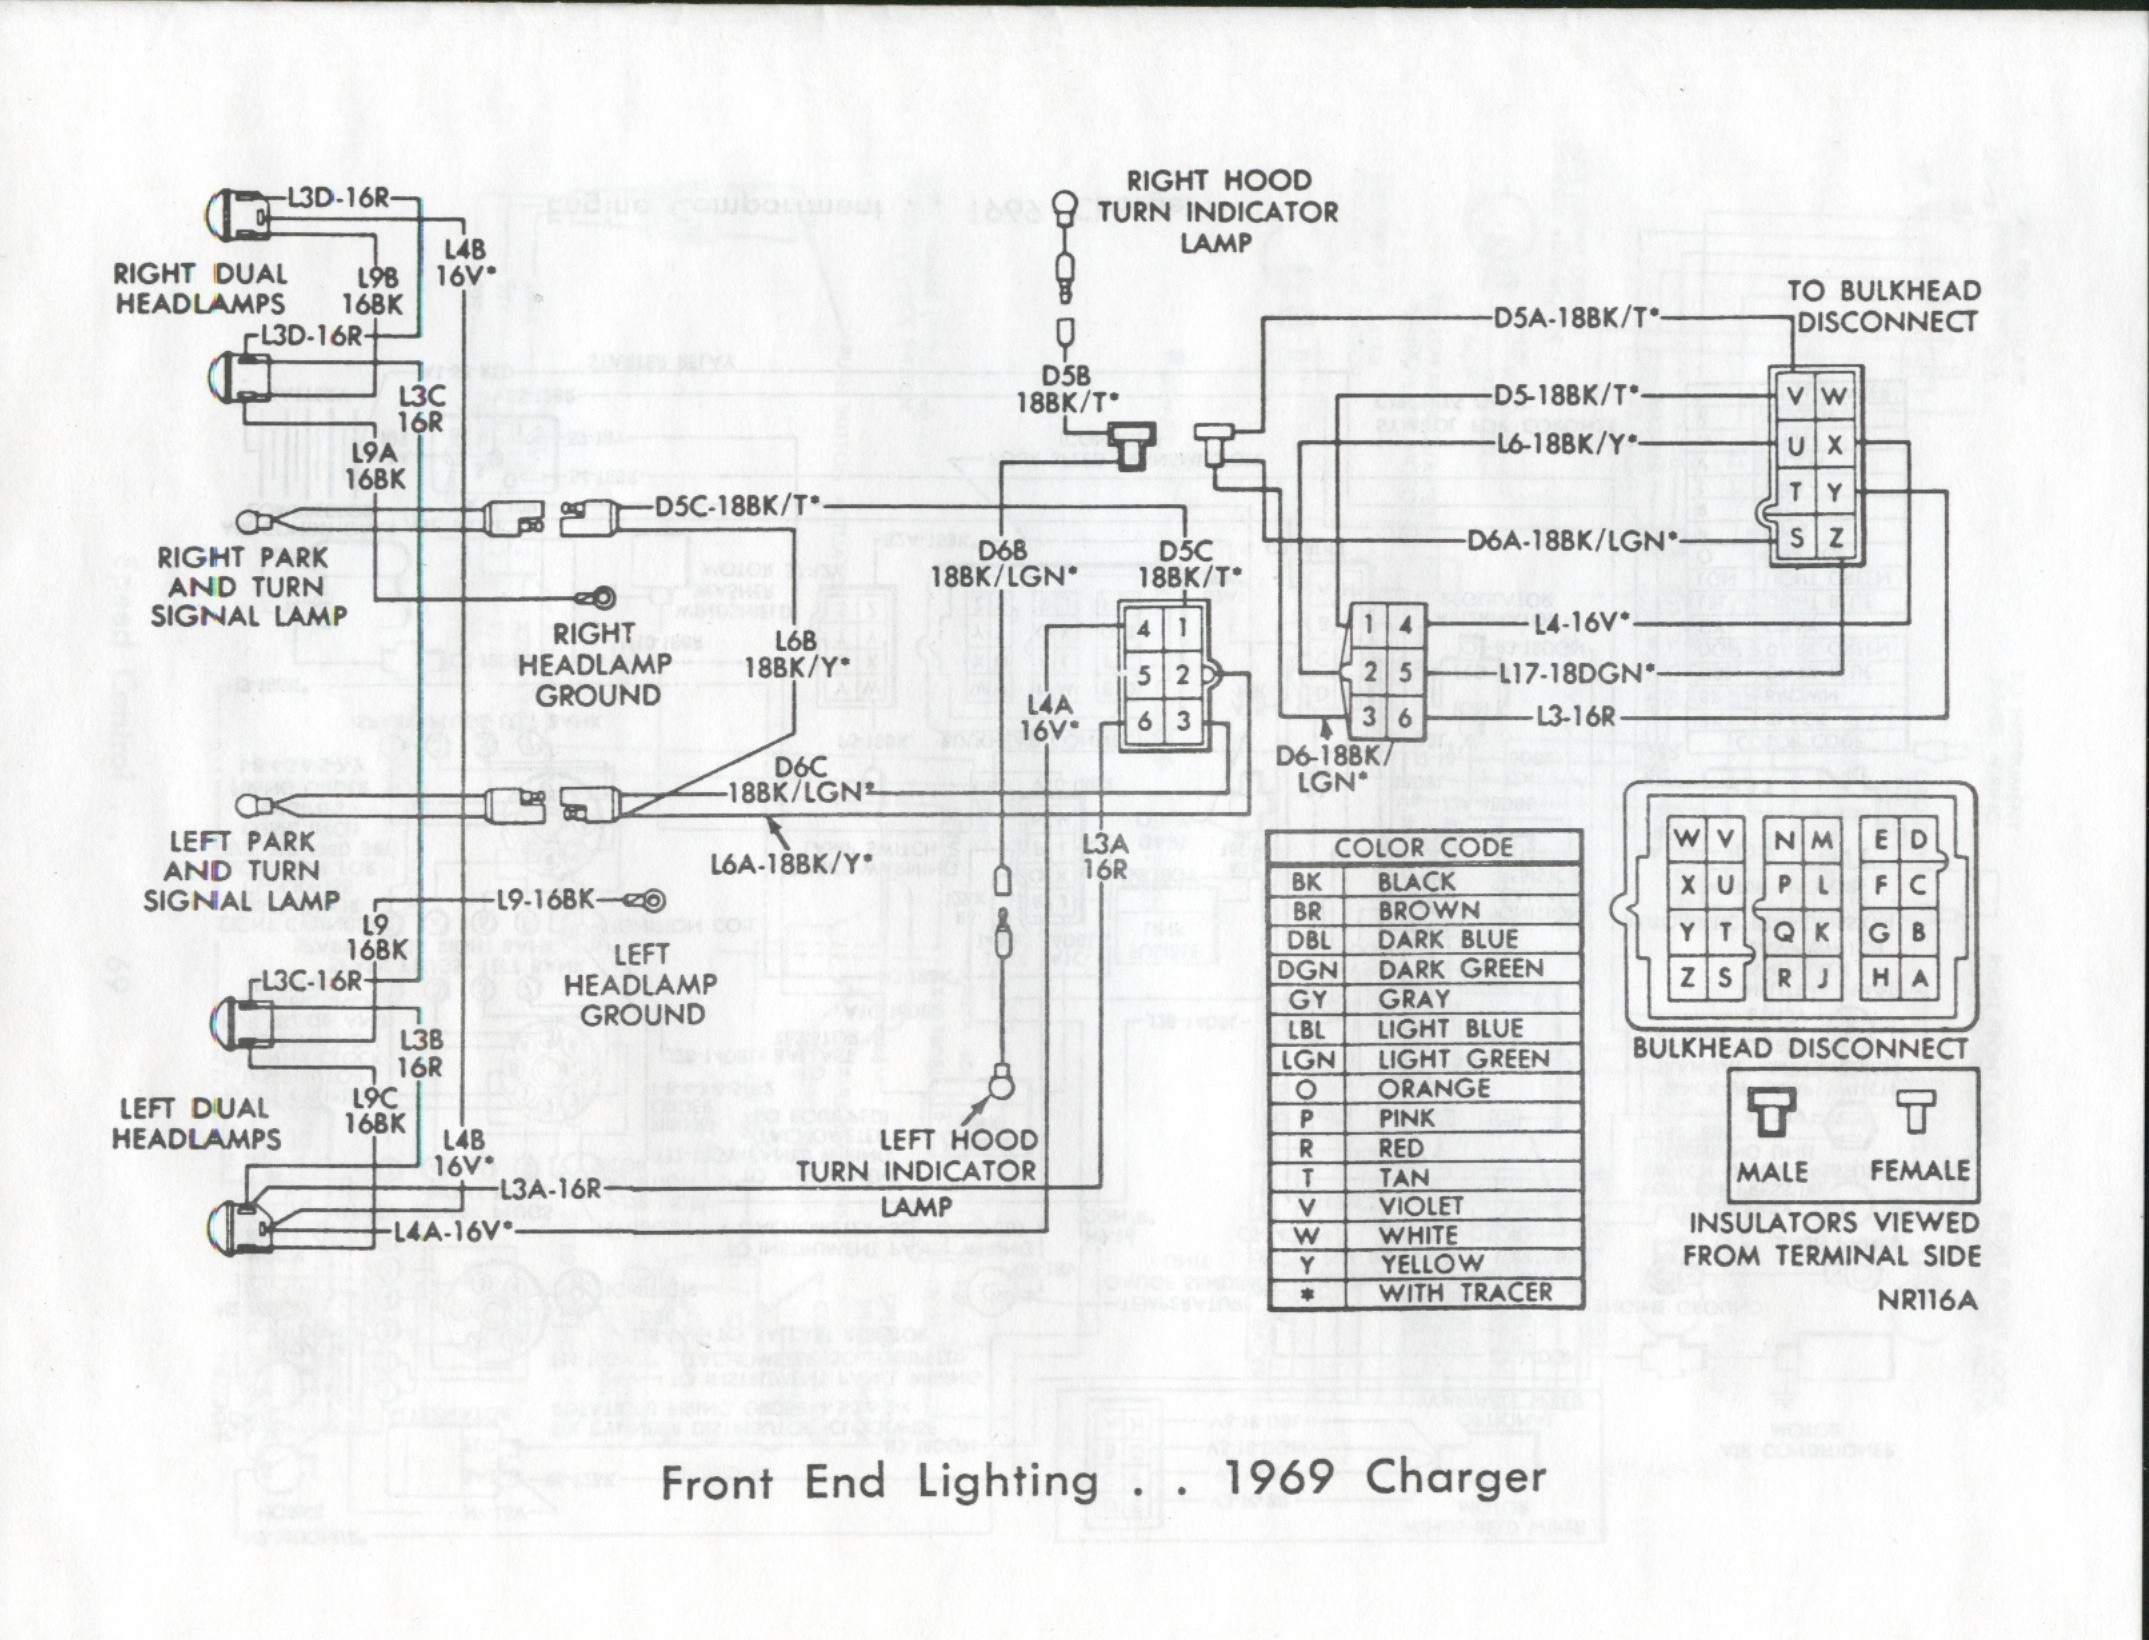 c_6 svp sa450 wiring harness diagram wiring diagrams for diy car repairs Honda Wiring Diagram at bayanpartner.co